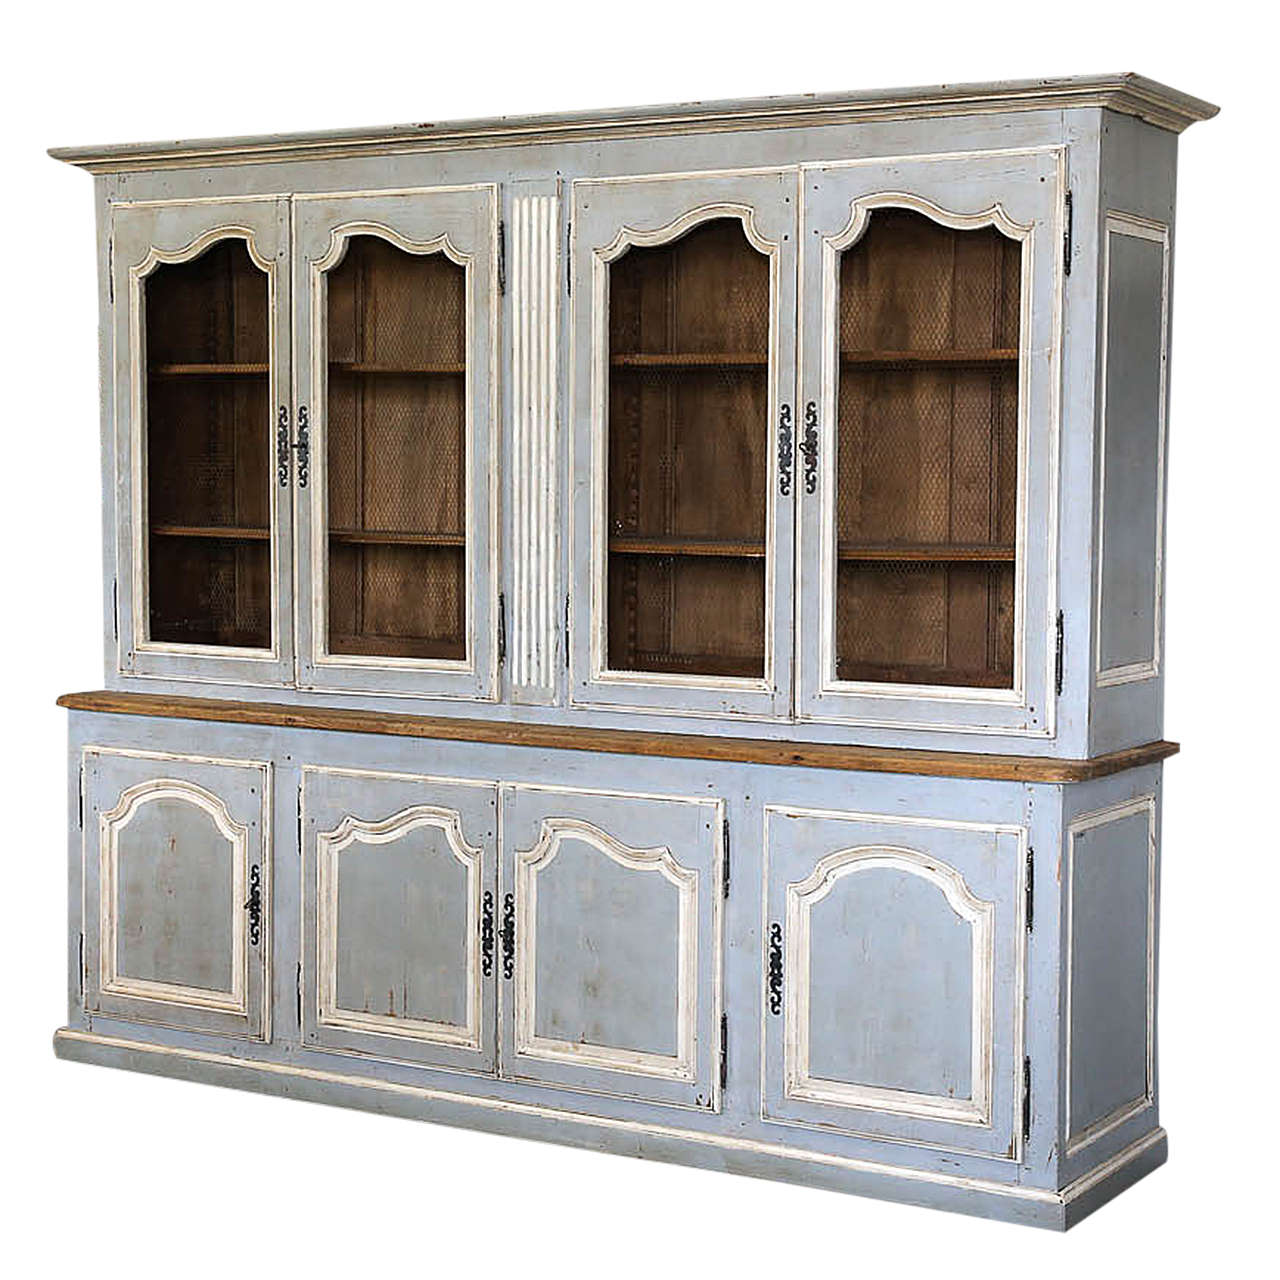 painted french louis xv style bibliotheque or bookcase at. Black Bedroom Furniture Sets. Home Design Ideas